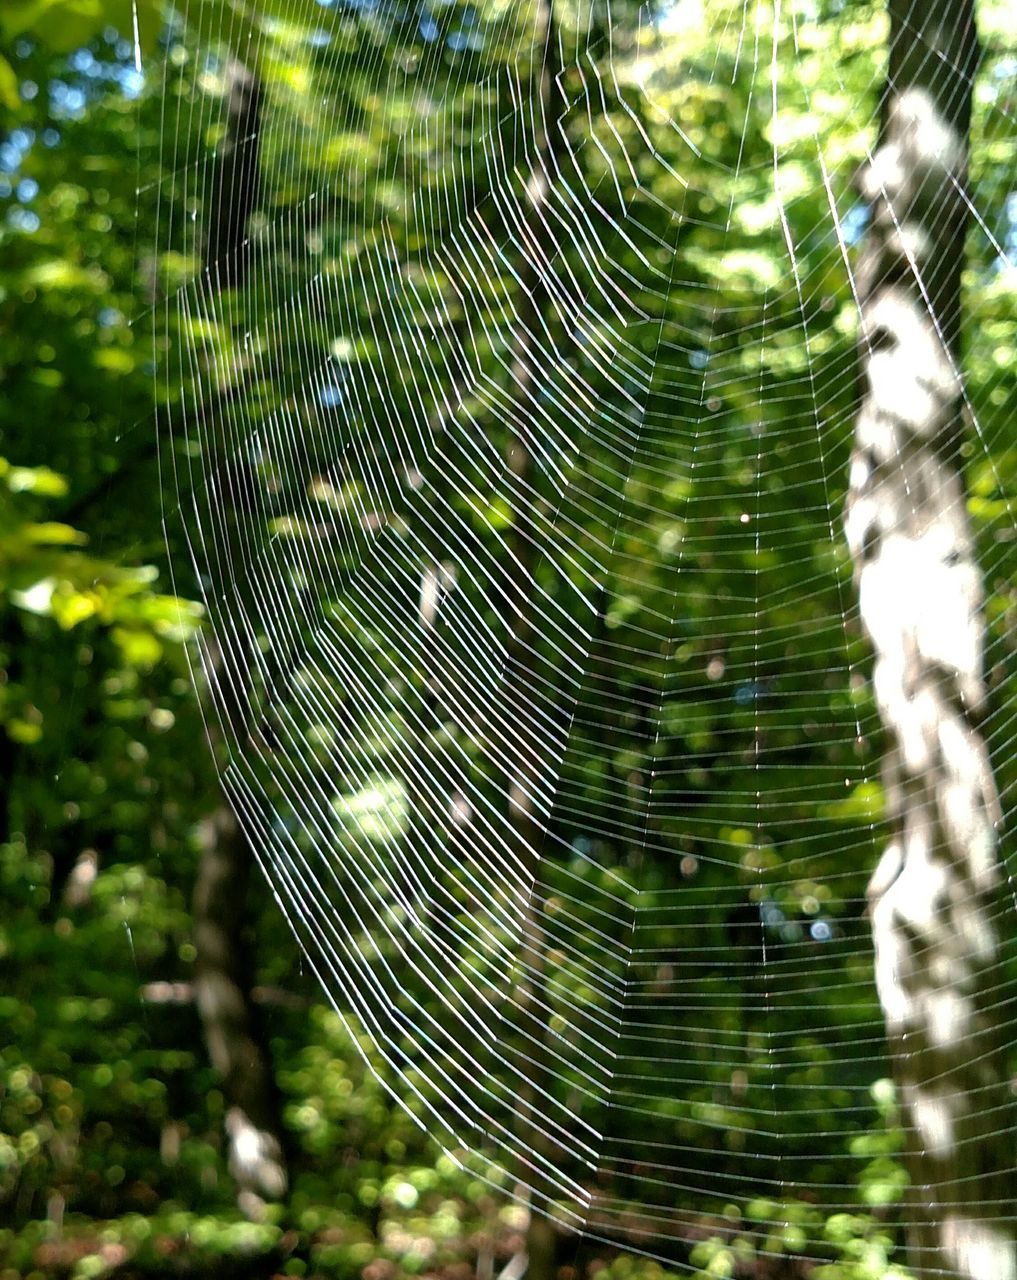 nature, spider web, beauty in nature, focus on foreground, fragility, close-up, outdoors, drop, web, no people, green color, growth, freshness, day, trapped, leaf, water